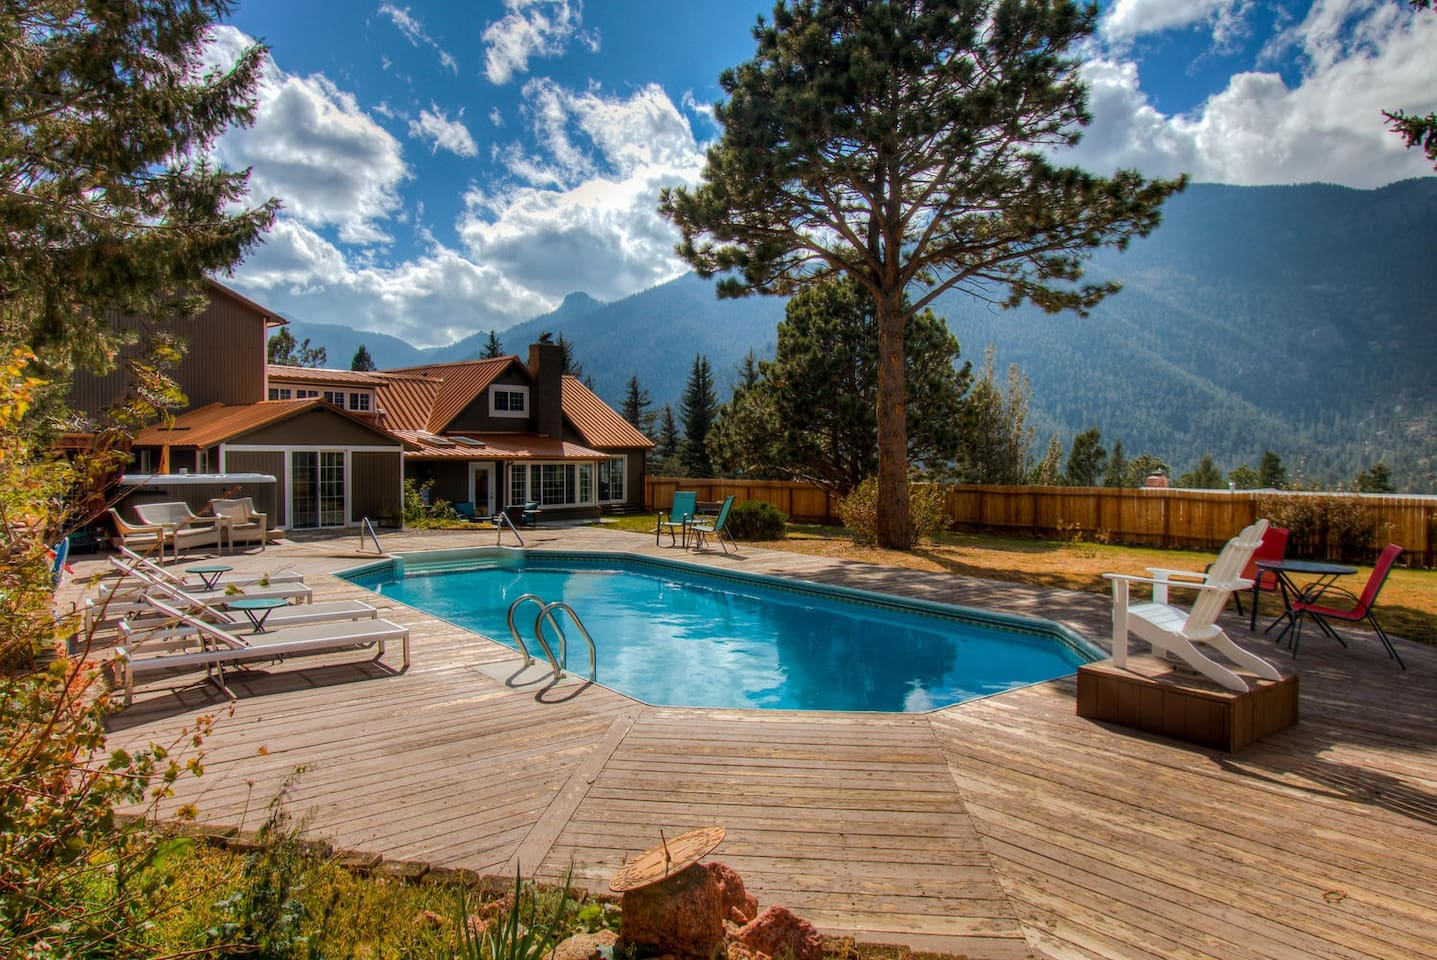 Magnificent views from the backyard pool